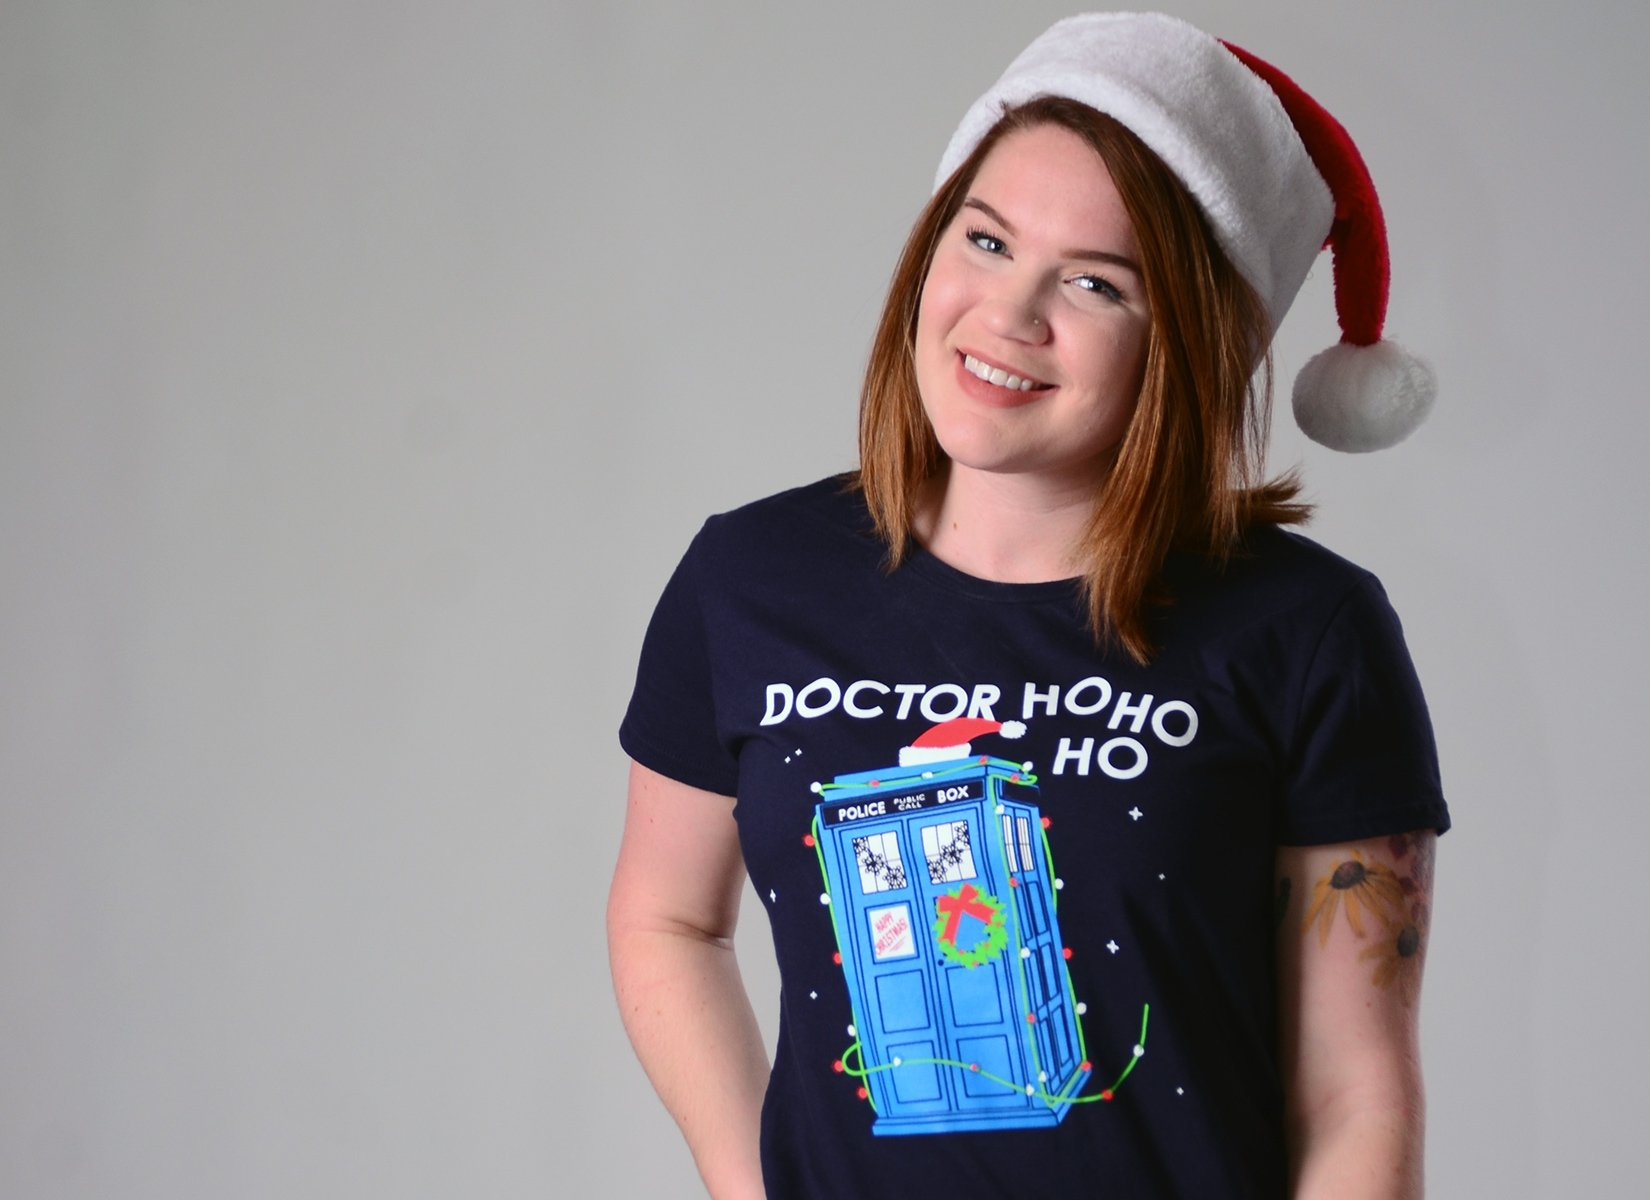 Doctor Ho Ho Ho on Womens T-Shirt